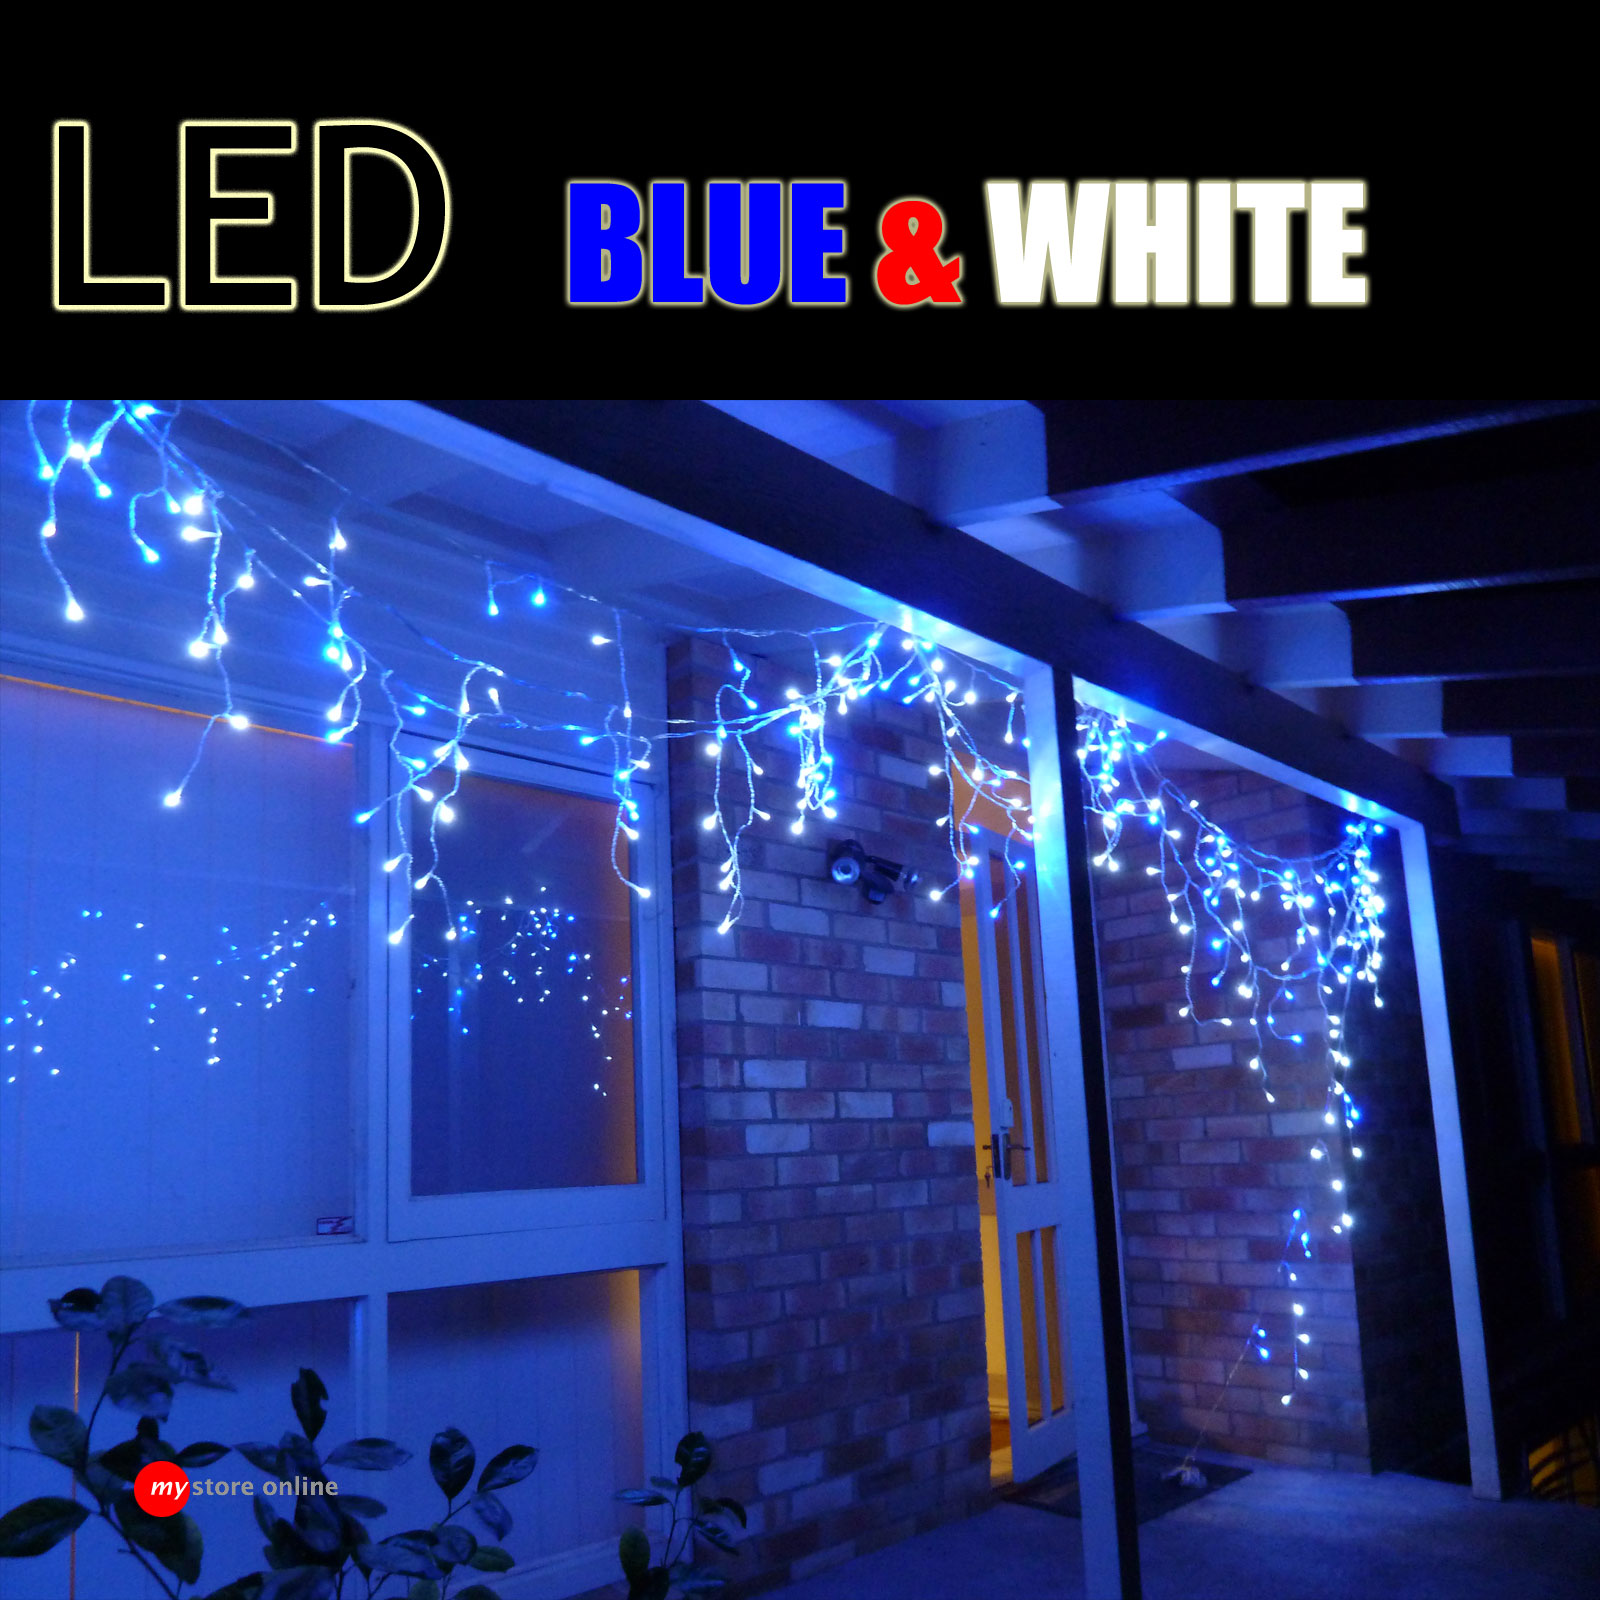 Utra bright head led blue white outdoor christmas